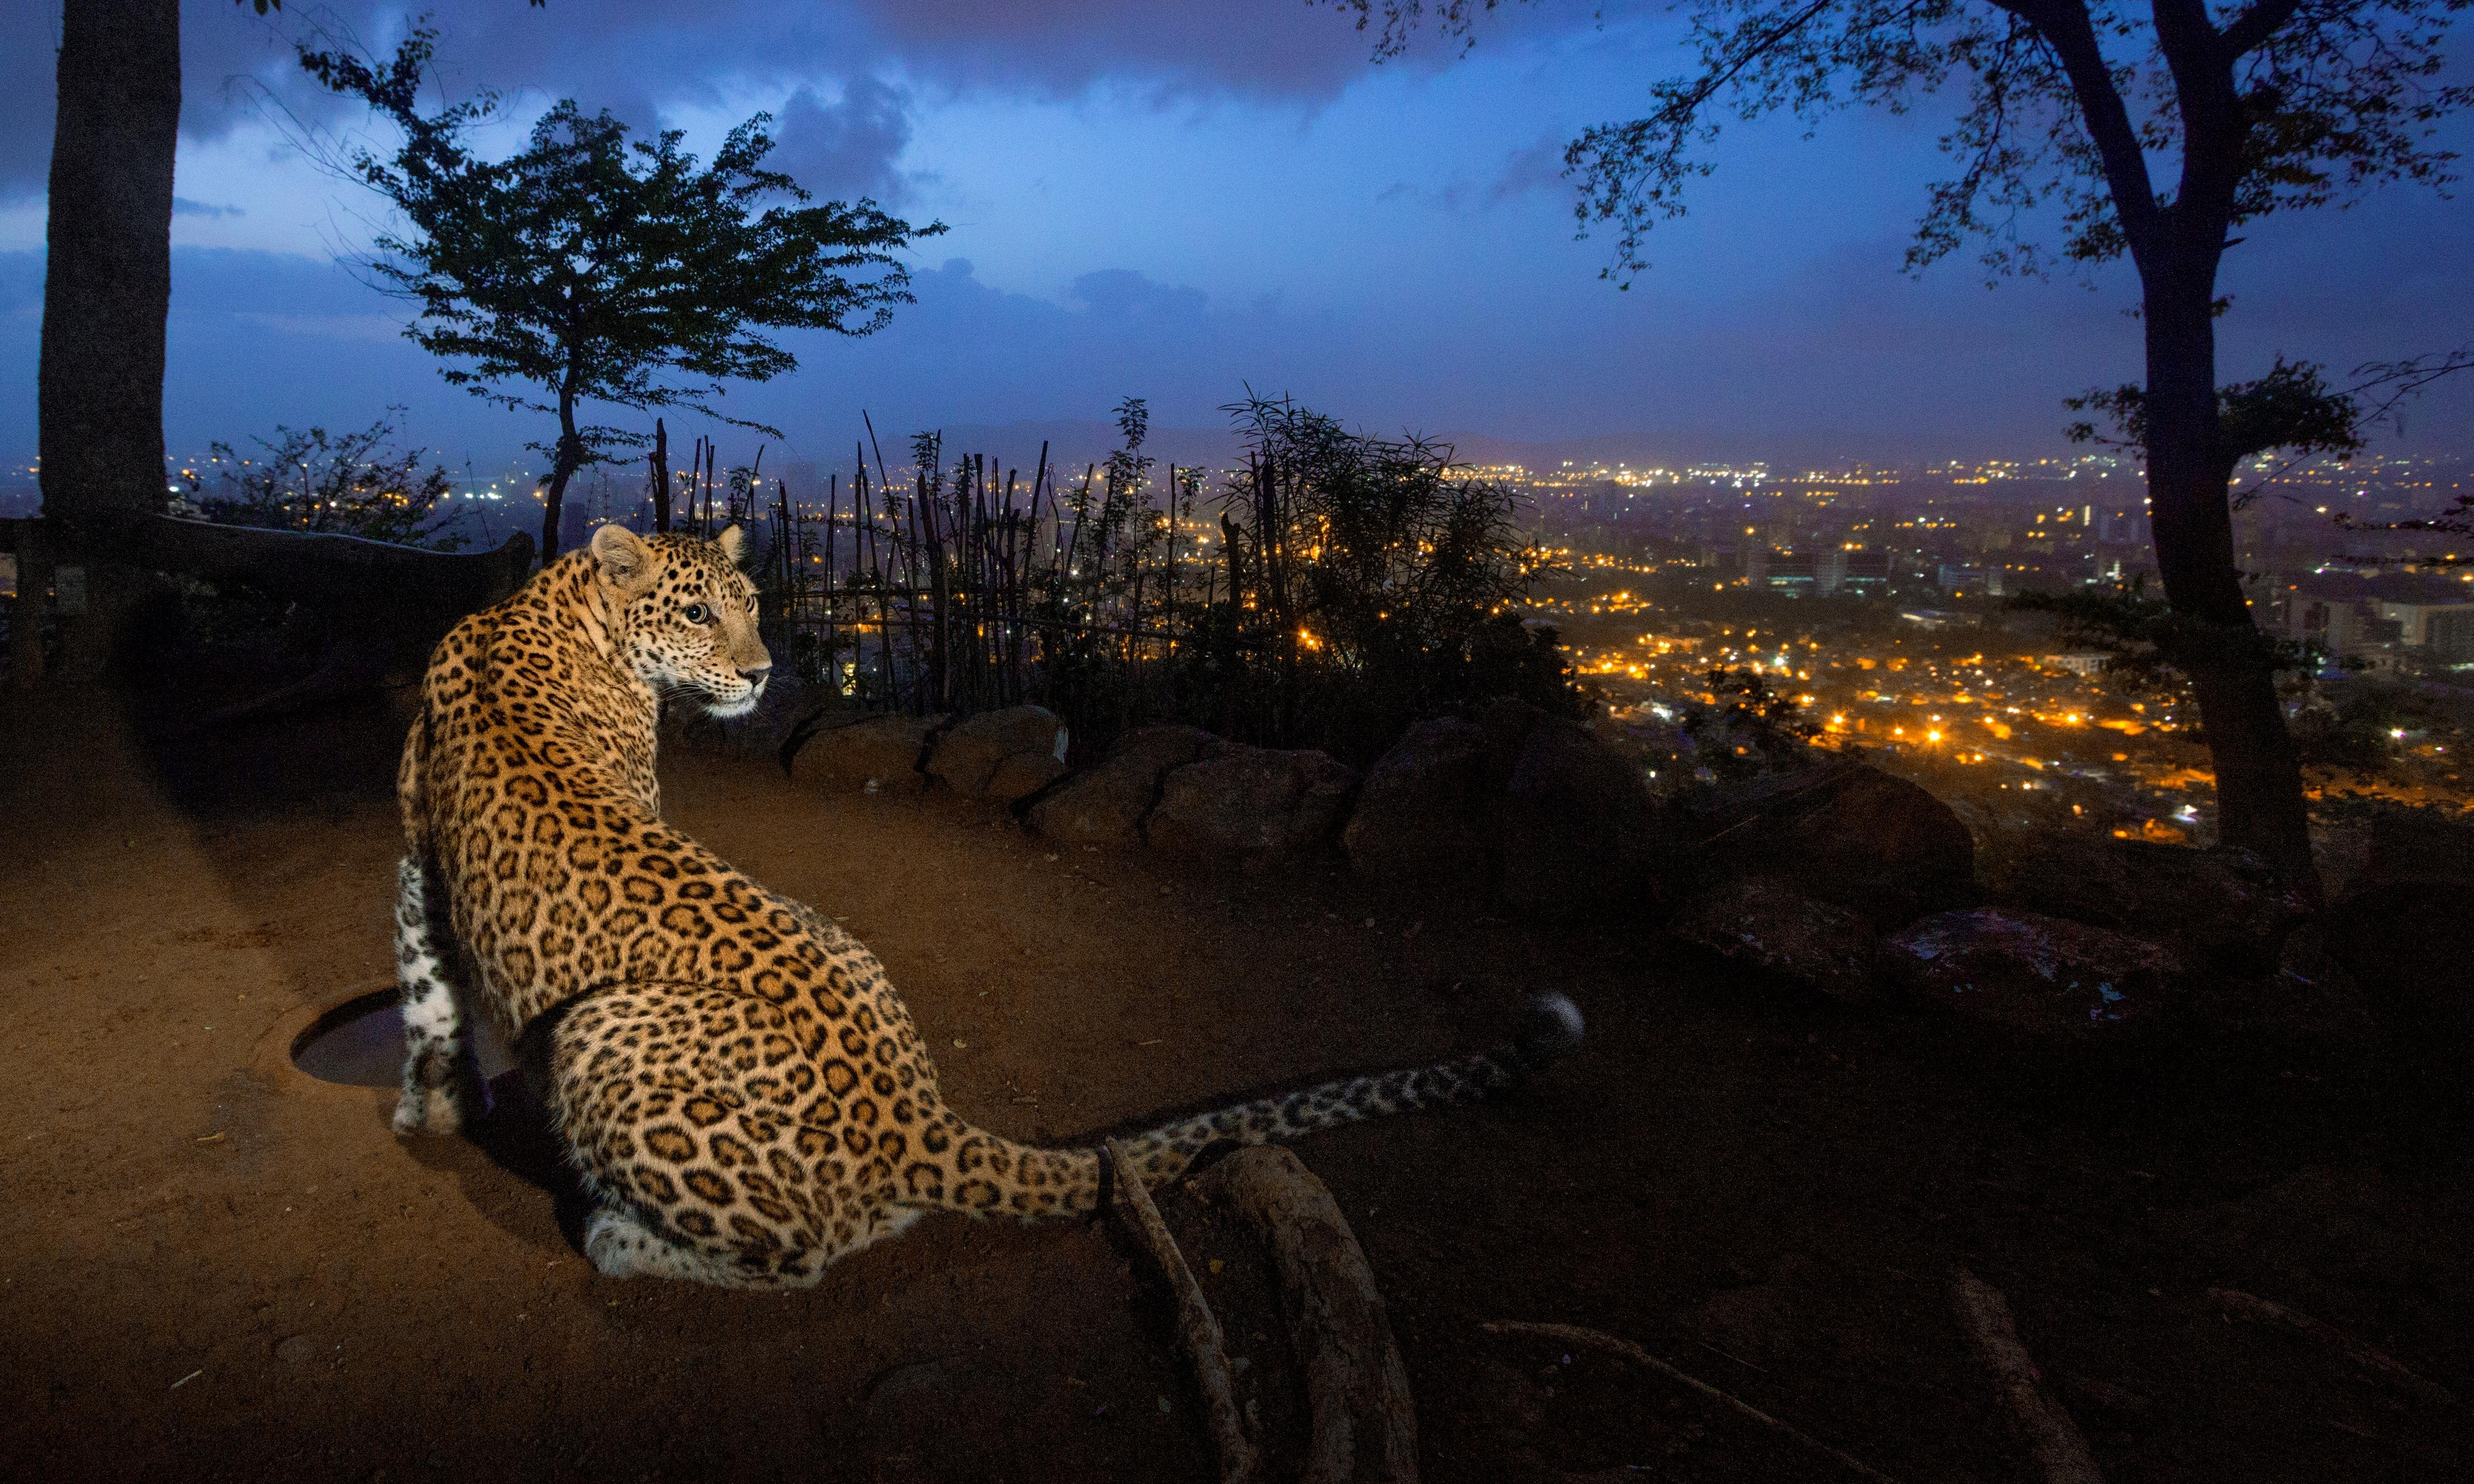 Mumbai's leopards have killed humans – but could they also be saving lives?